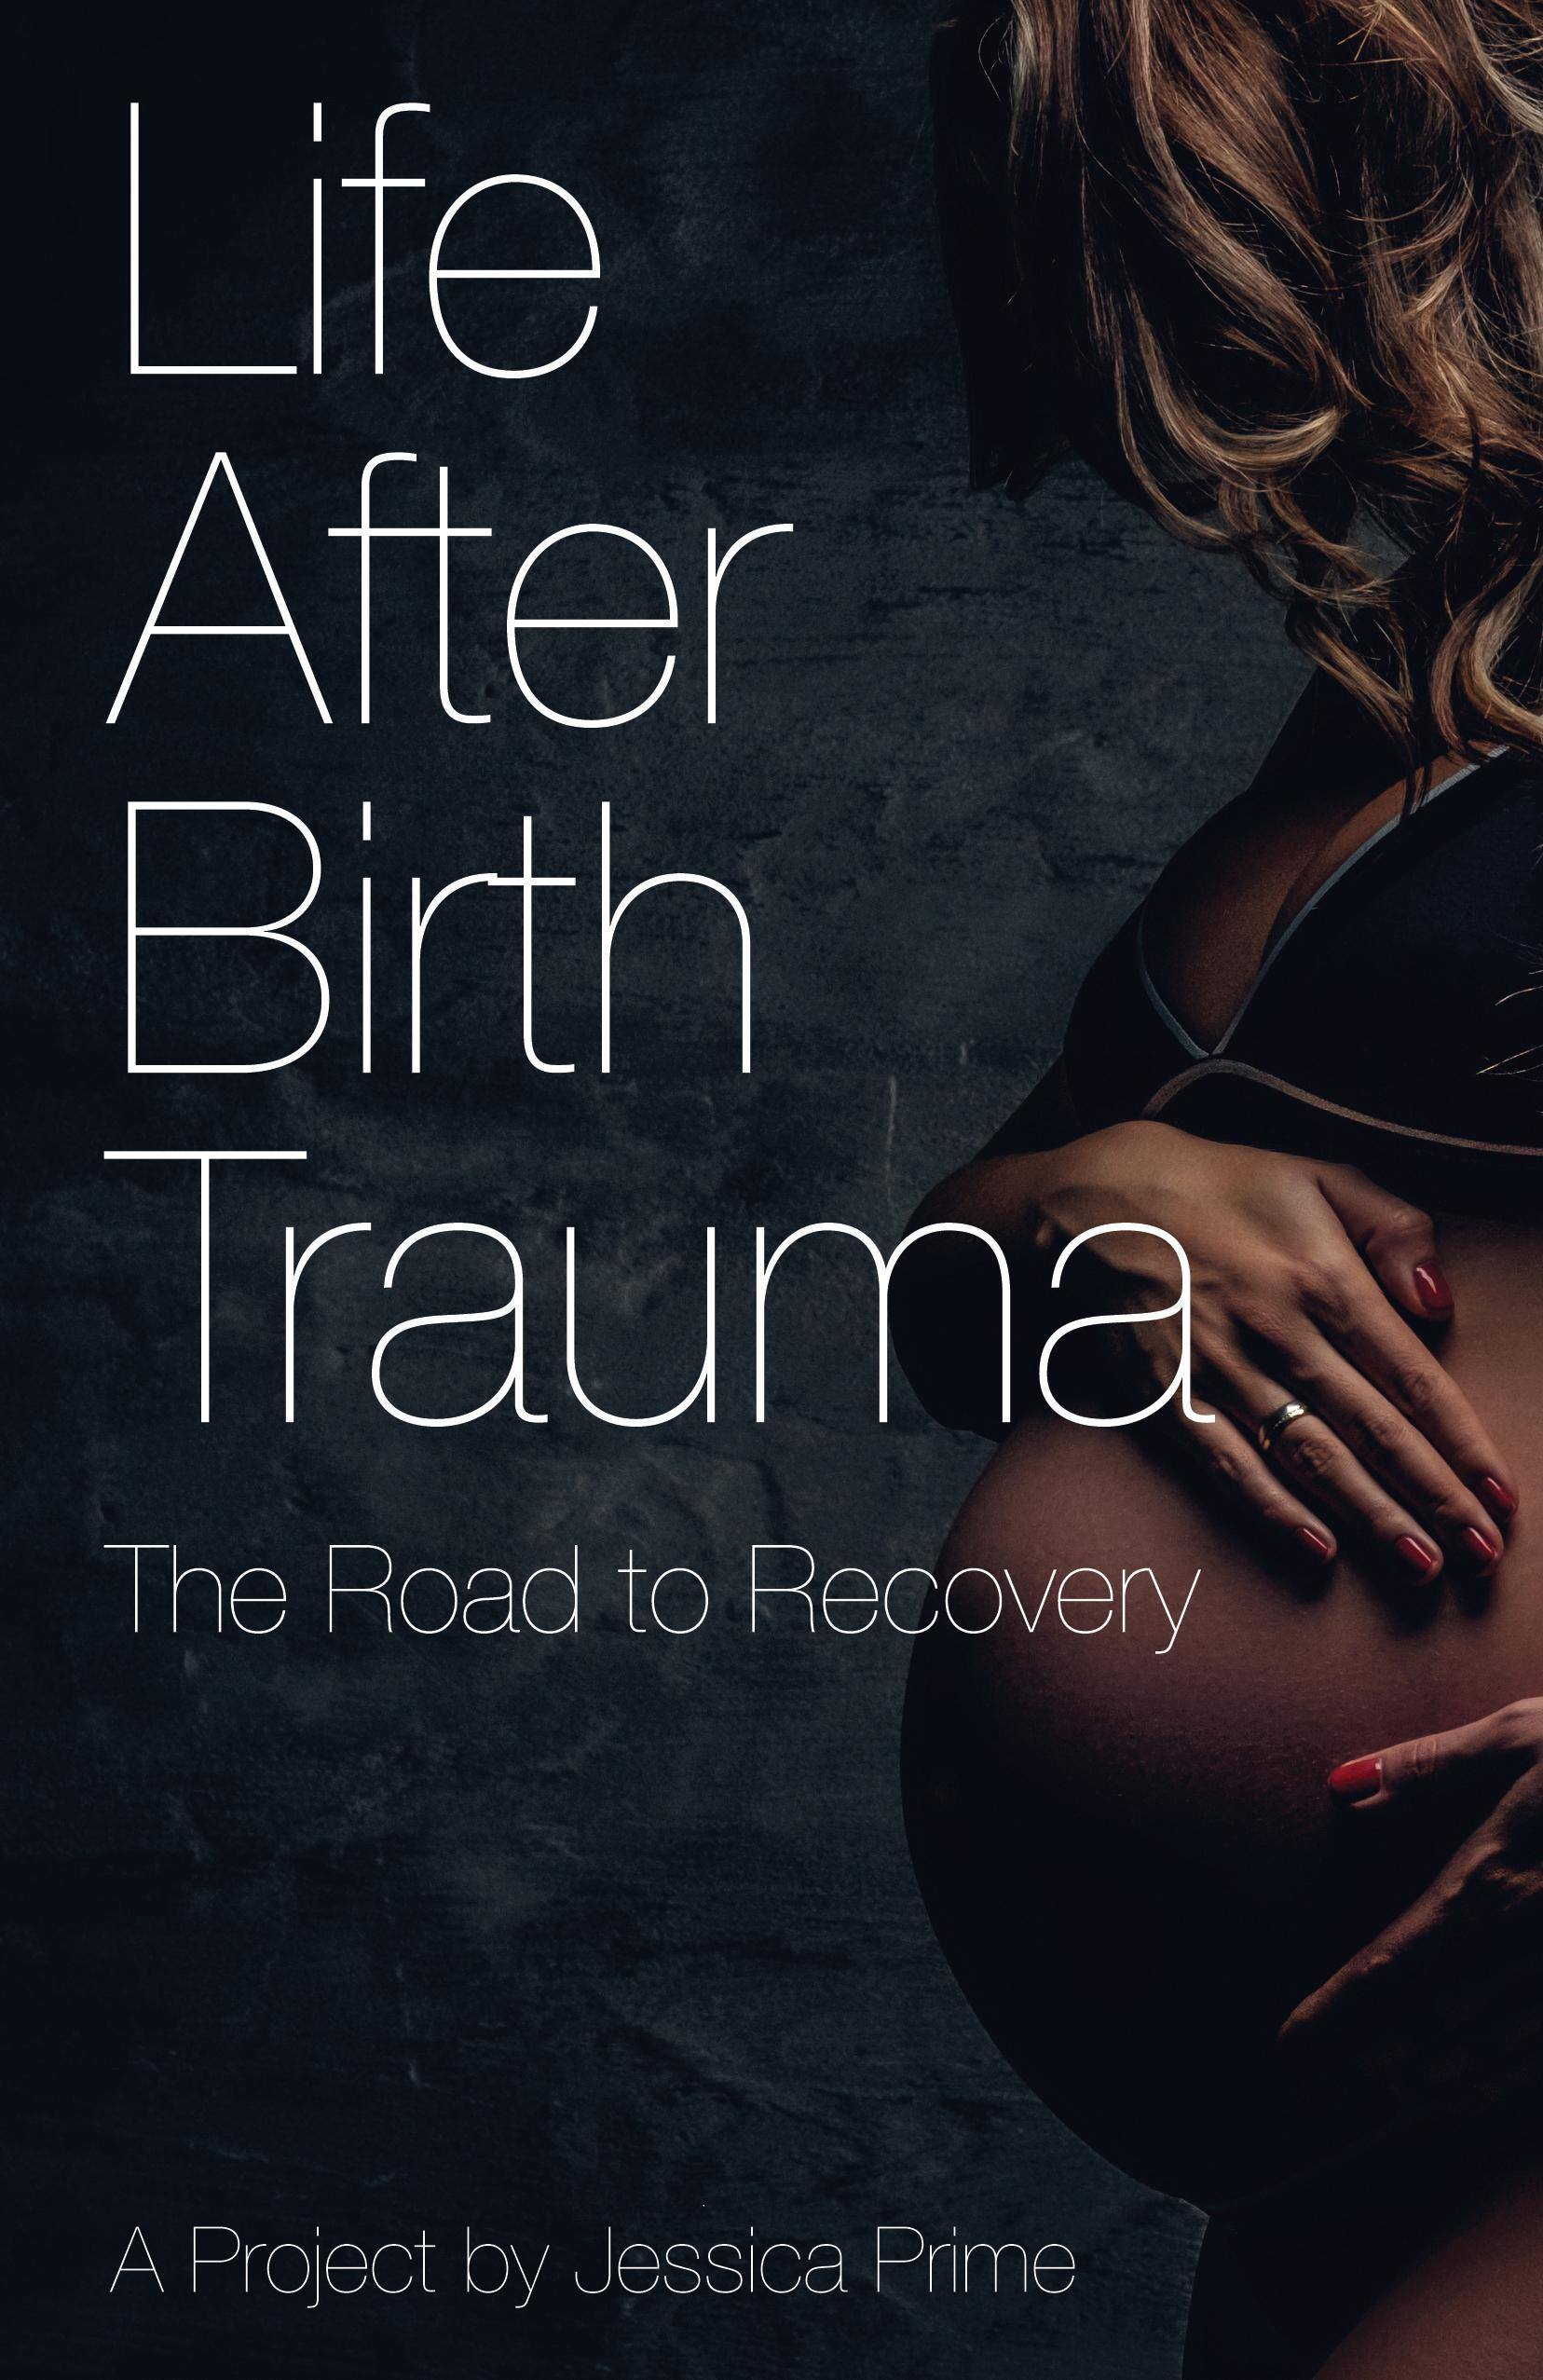 Life After Birth Trauma - Book Review